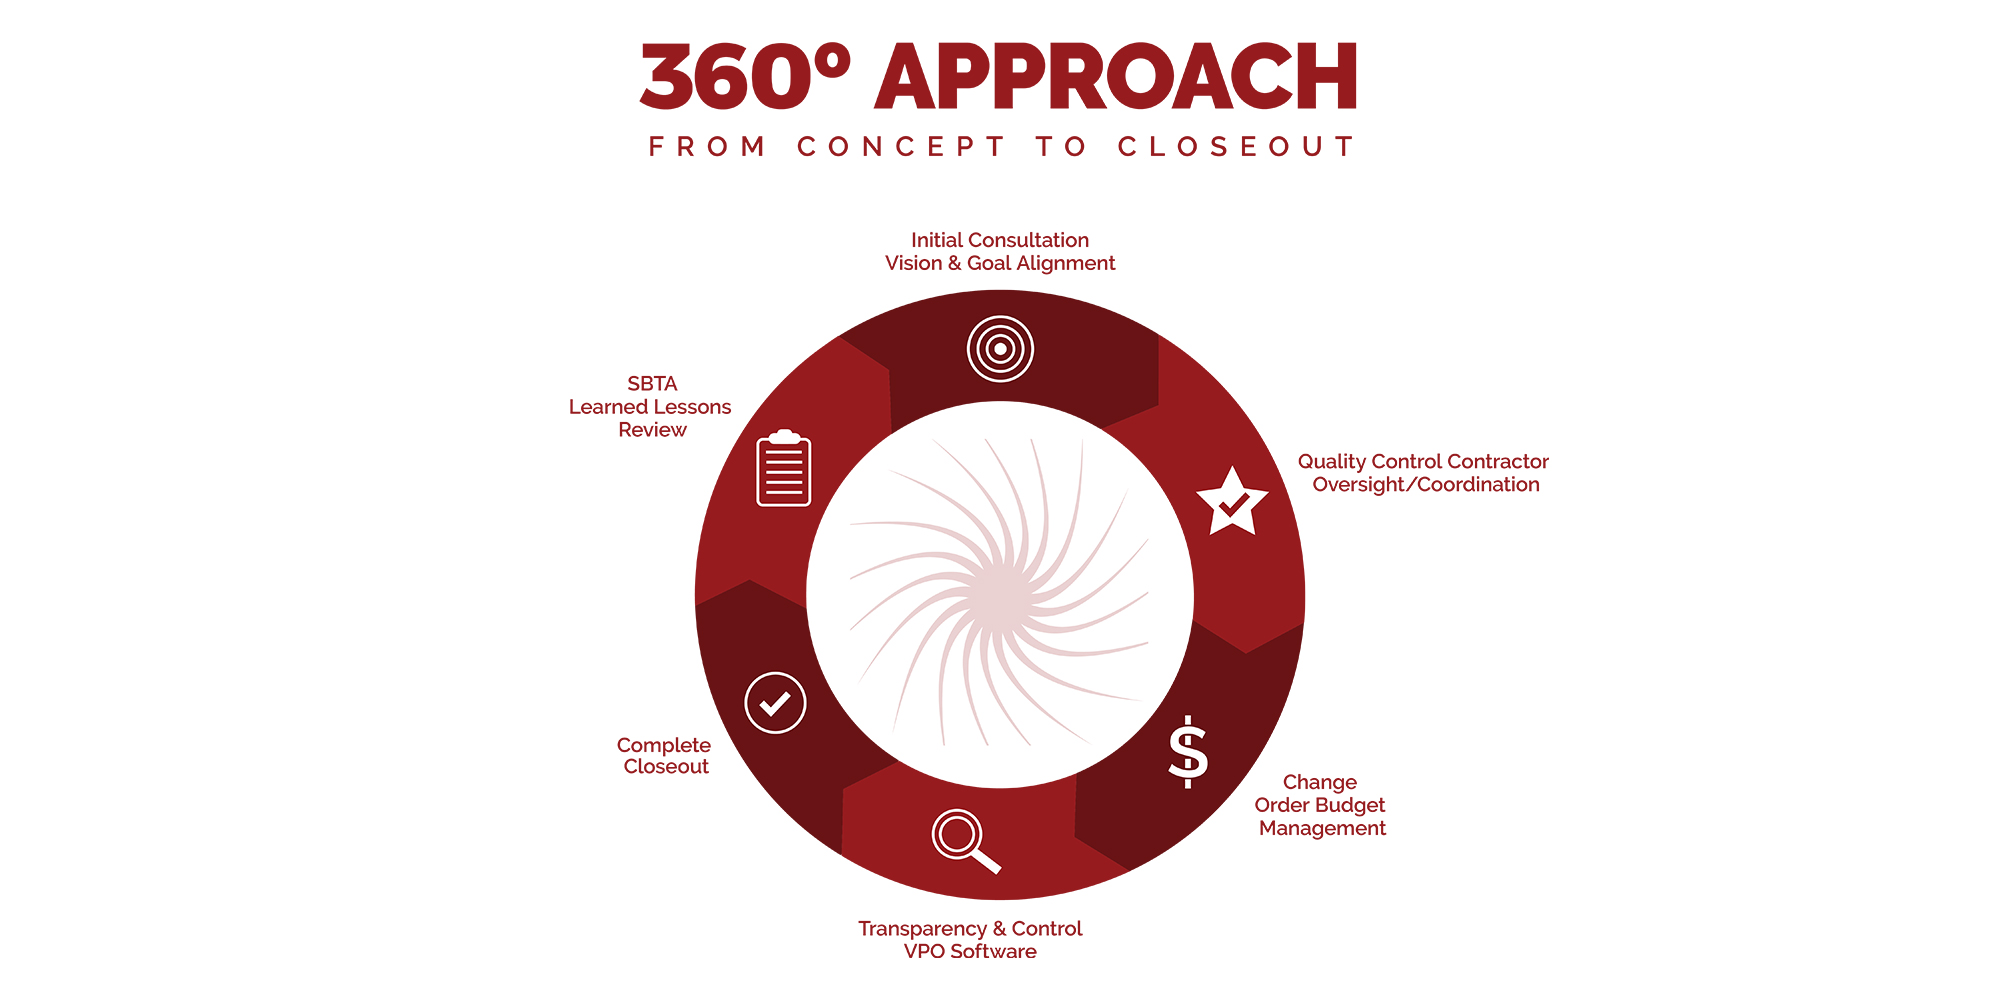 360-approach-infographic